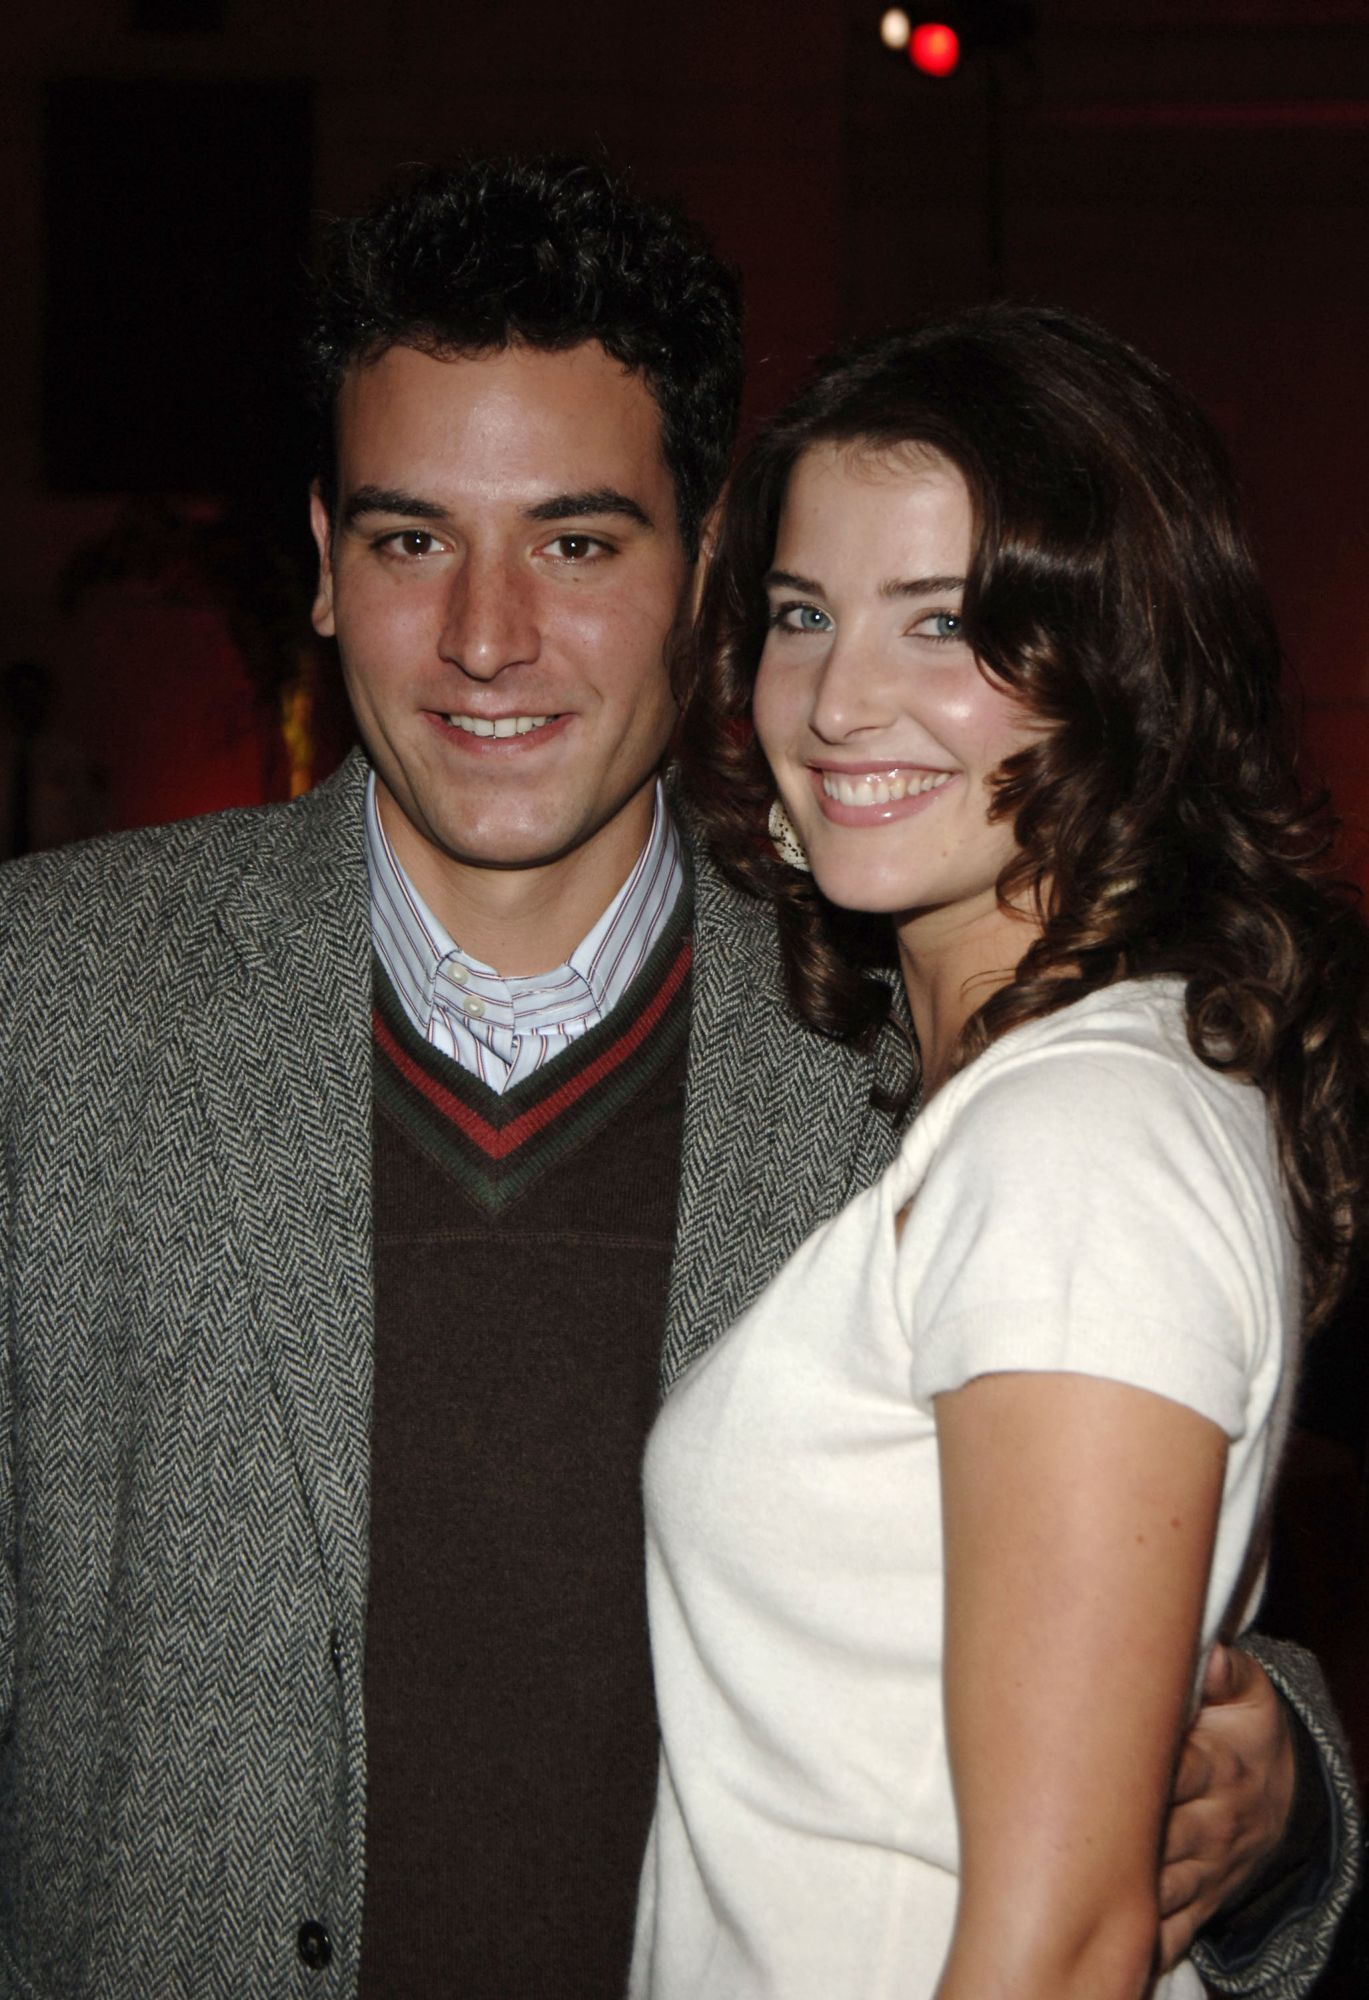 Josh Radnor dating Cobie Smulders